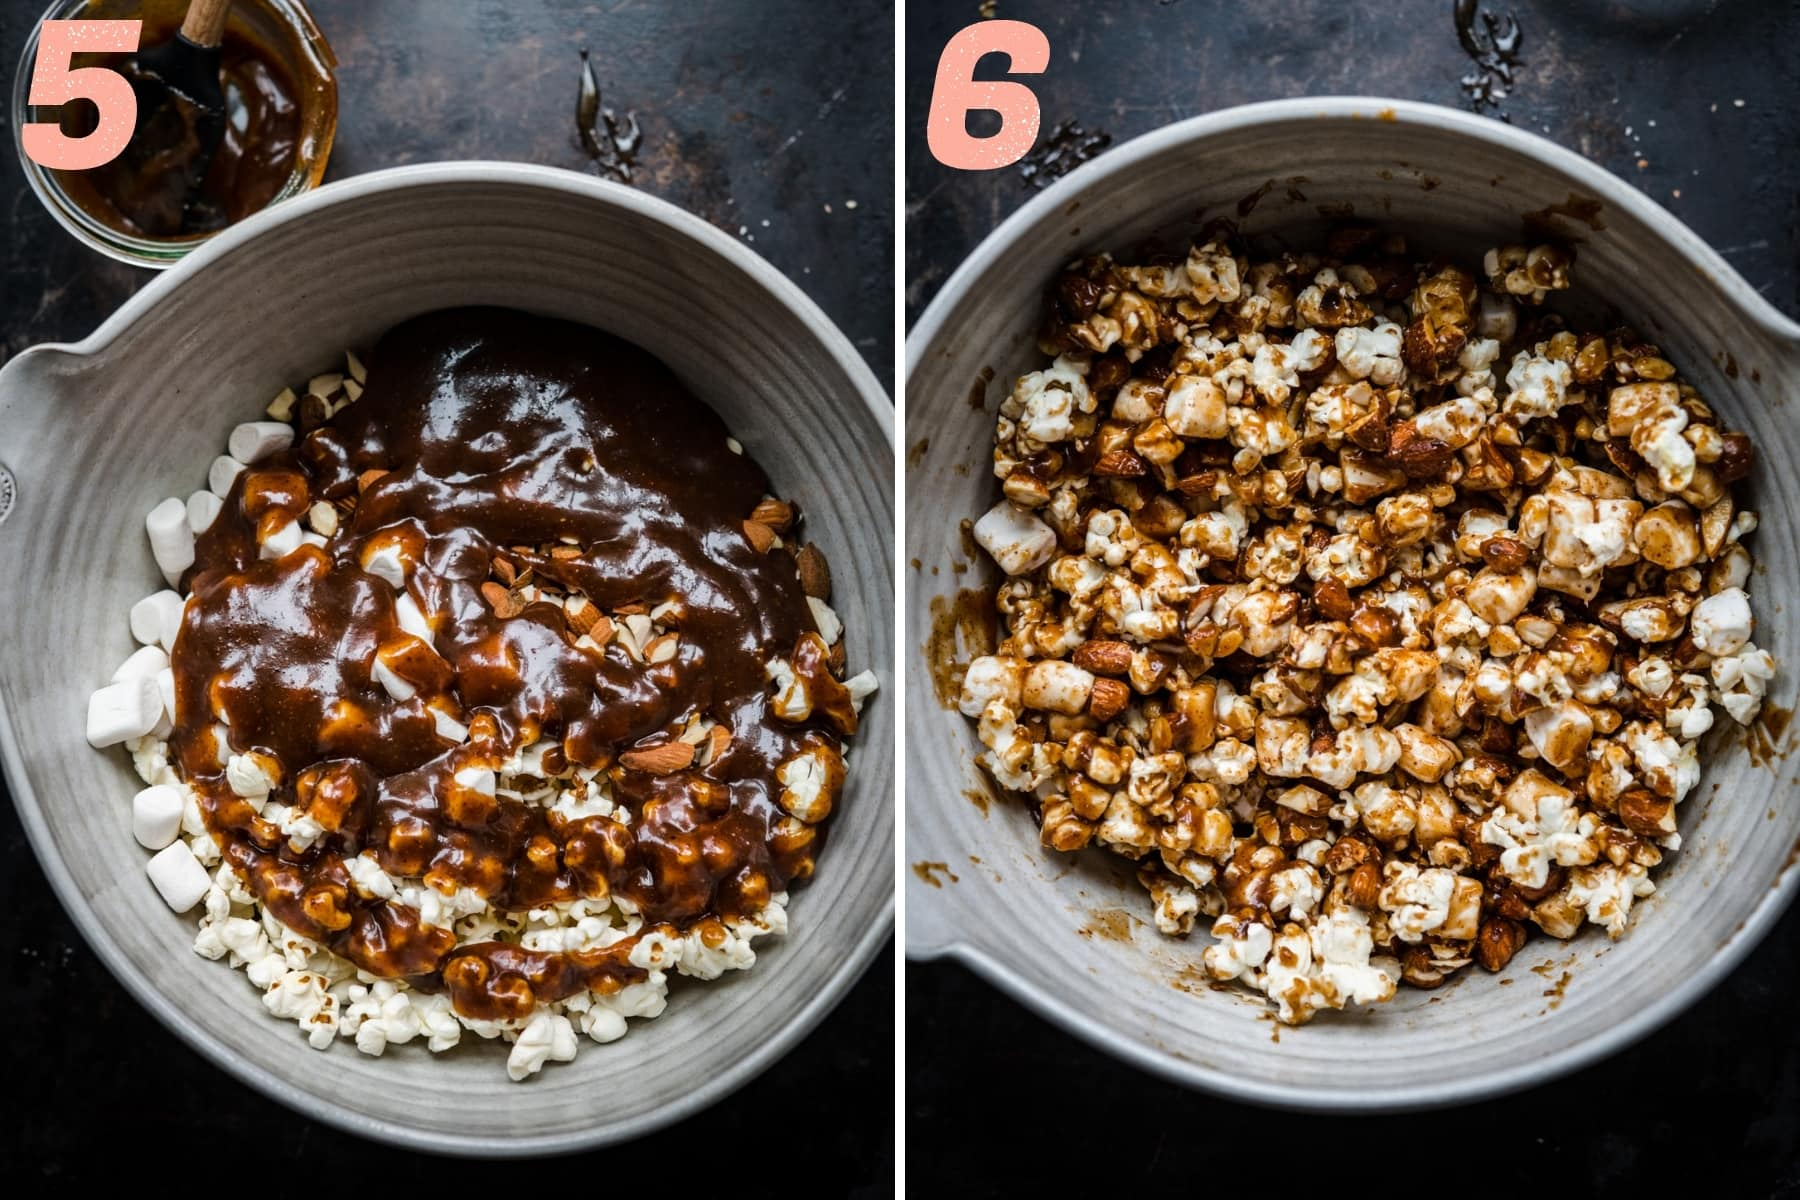 before and after stirring together marshmallows, almonds, popcorn and vegan caramel in bowl.